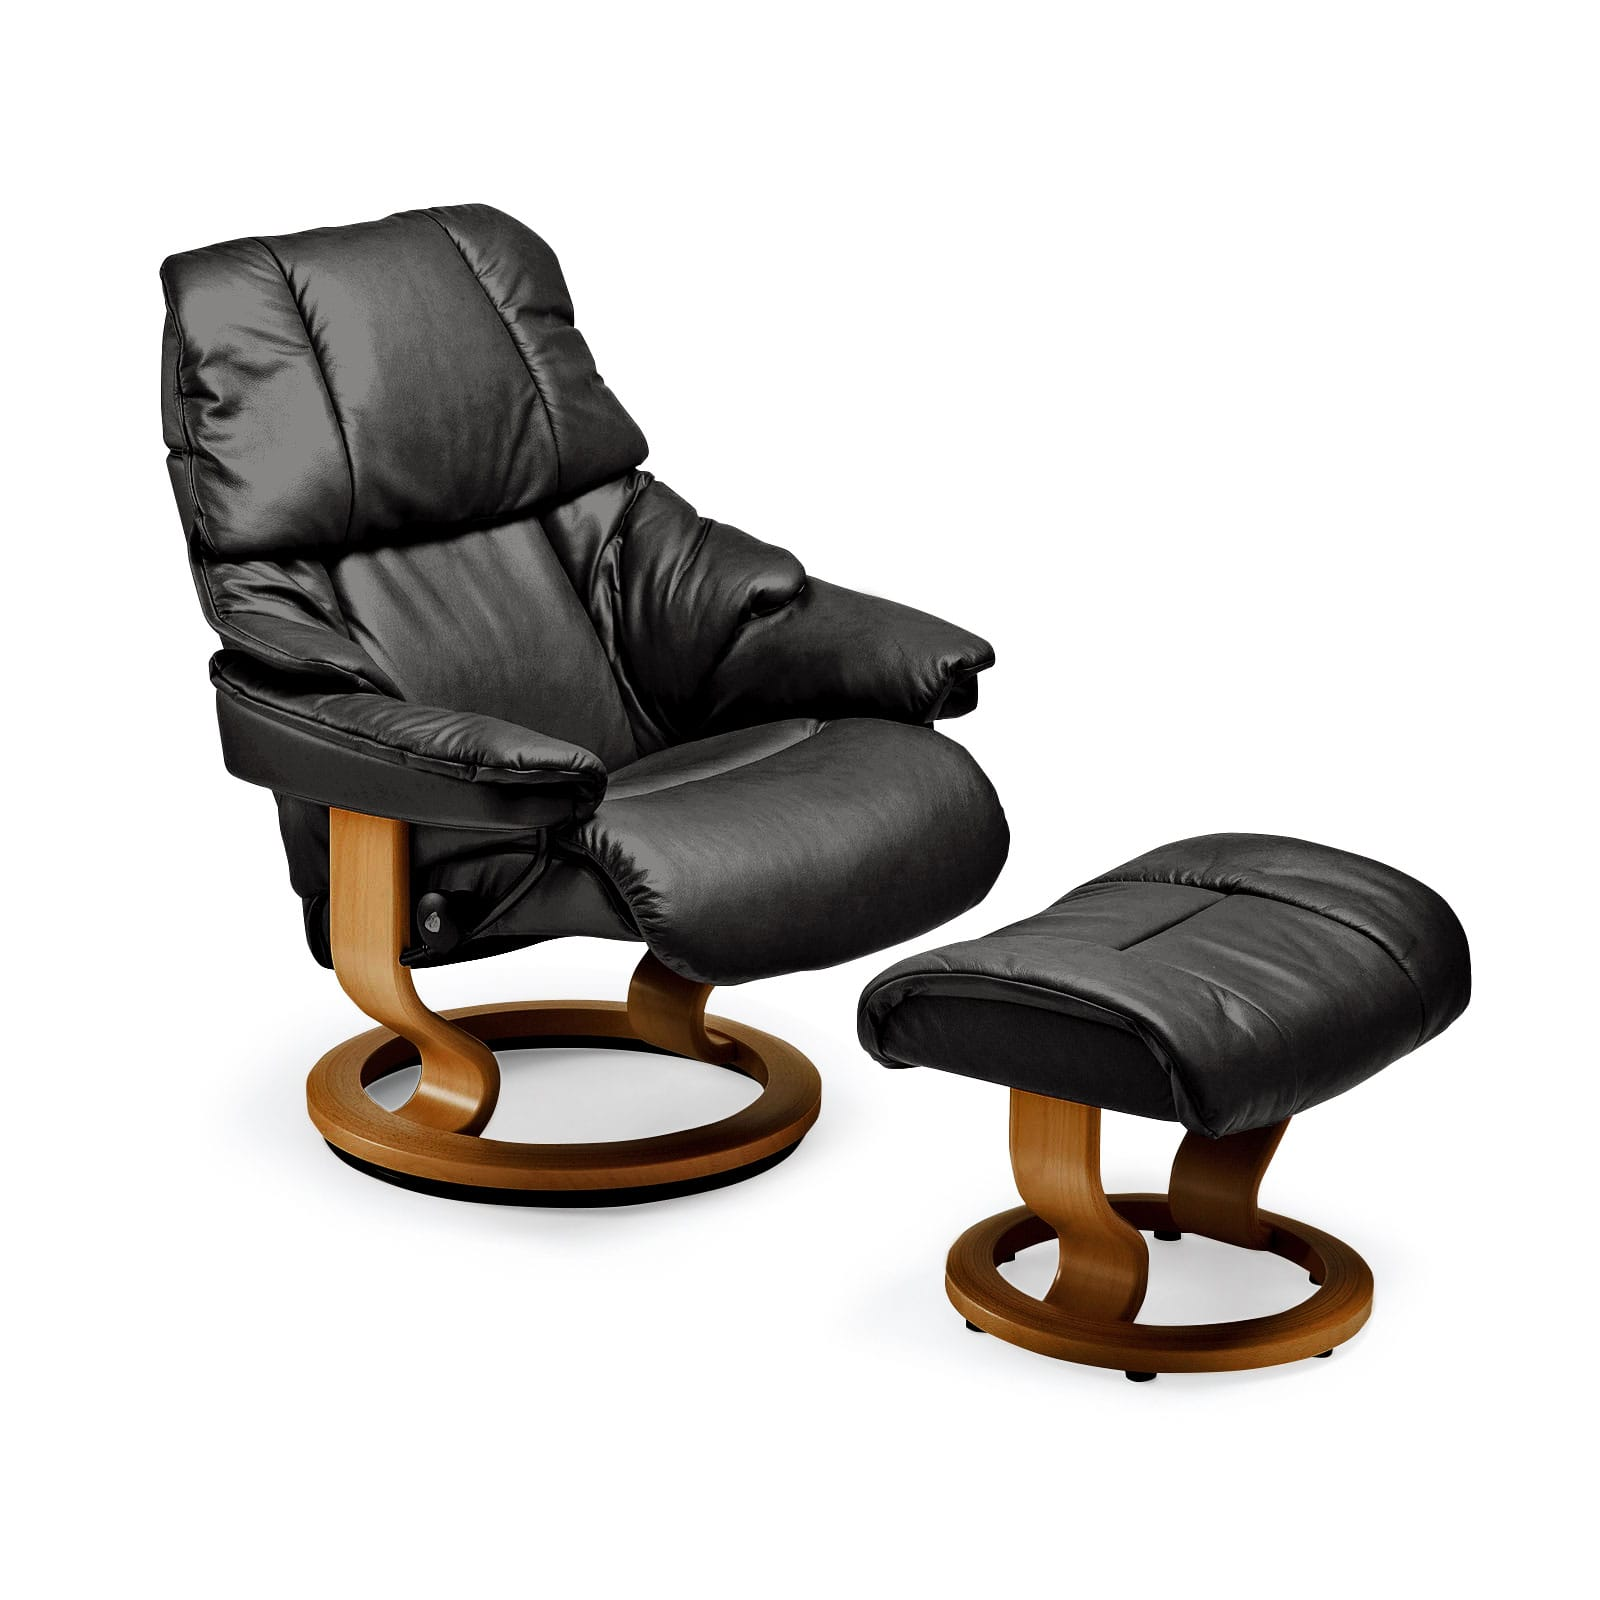 stressless stressless voyager recliners chairs ekornes. Black Bedroom Furniture Sets. Home Design Ideas